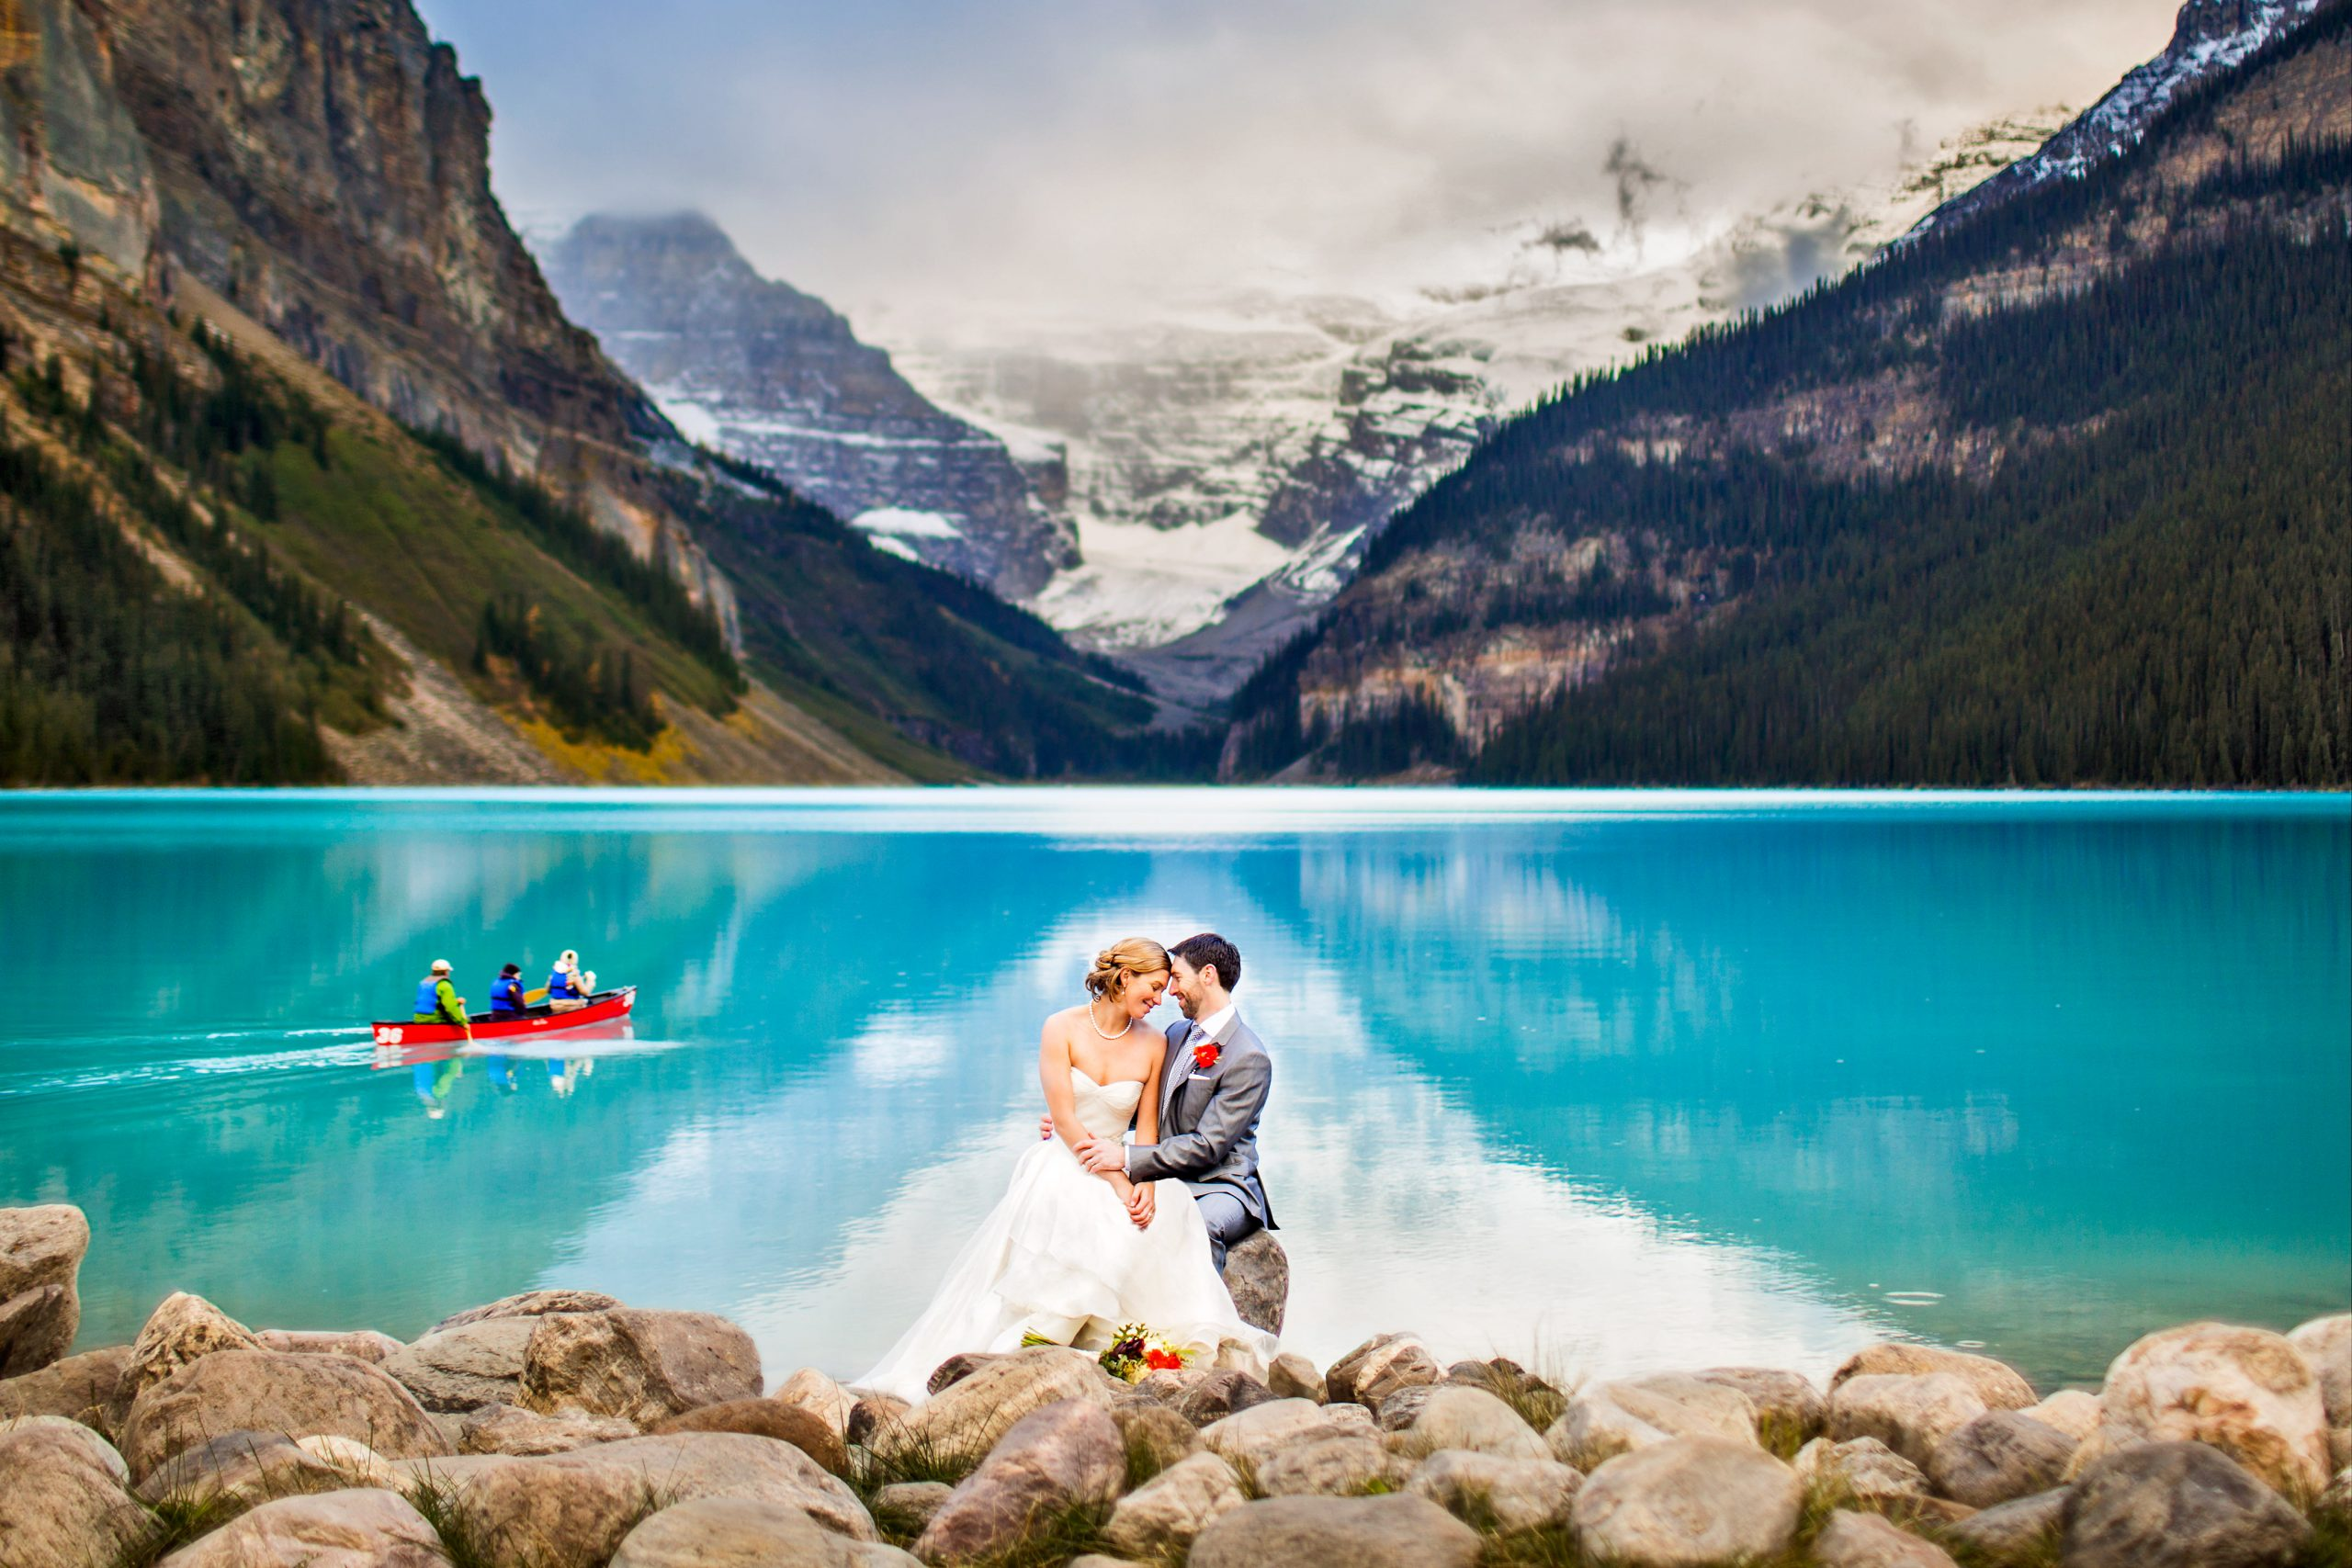 A couple in wedding attire embrace in front of Lake Louise, Banff